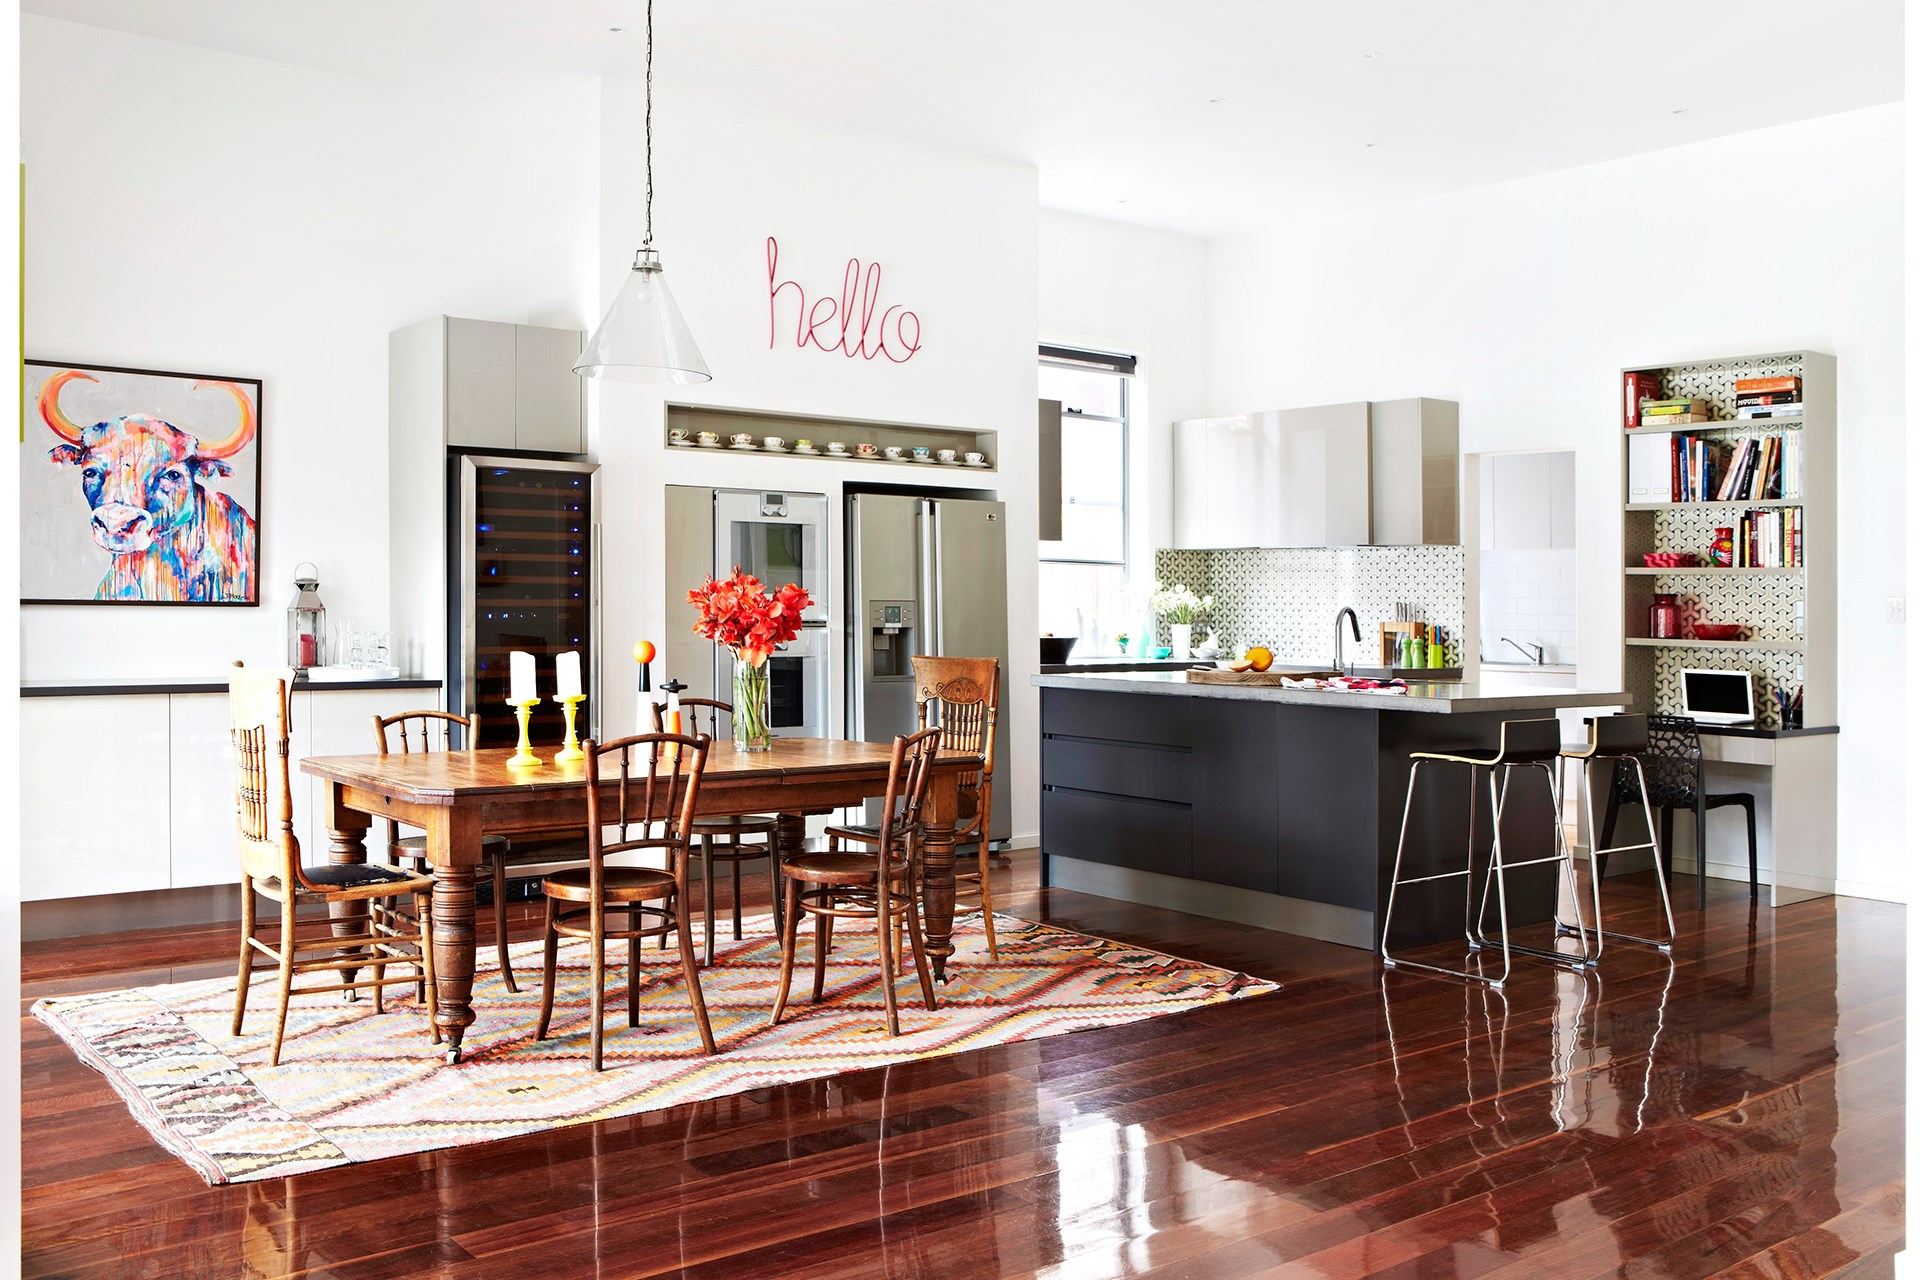 "Make winter cosier with heated floors. [> Check out this elegant Federation renovation with hydronic heating](http://www.homestolove.com.au/georgies-elegant-federation-house-renovation-1693|target=""_blank""). *Photo: Armelle Habib / Australian House & Garden*"